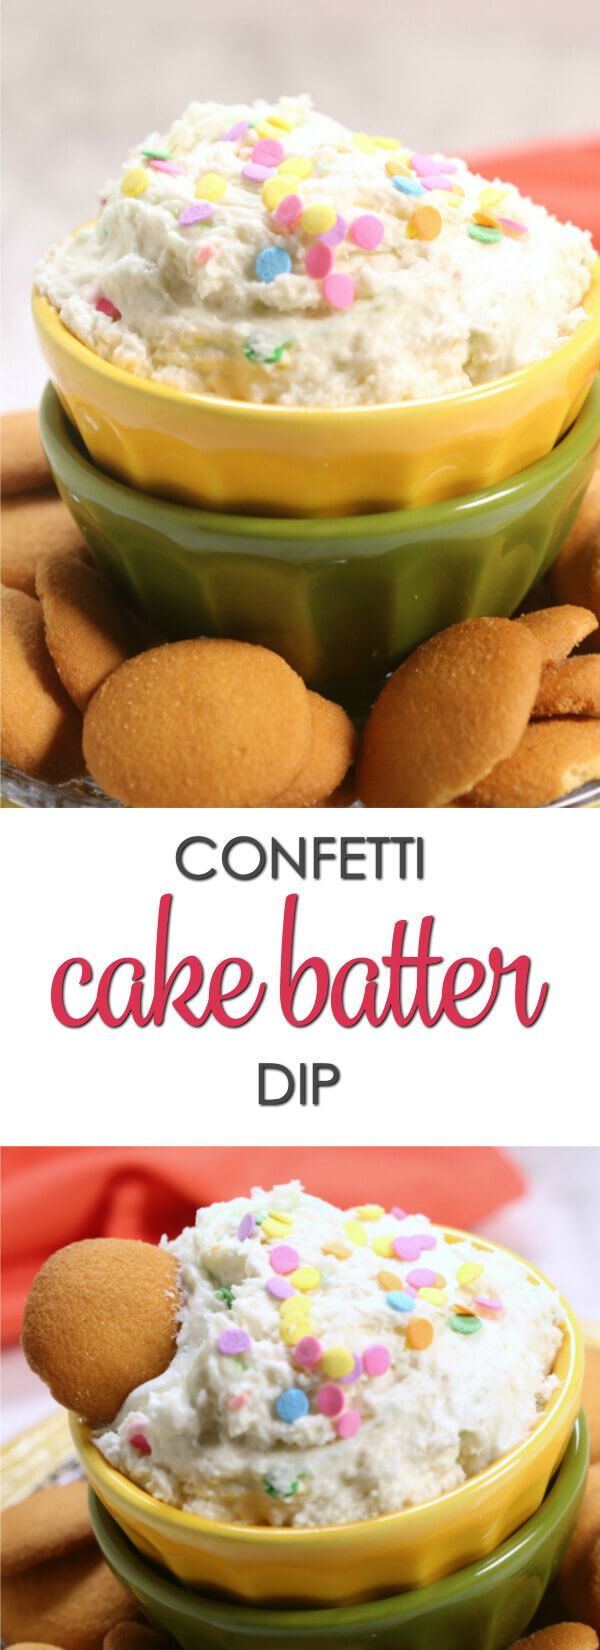 This easyConfetti Cake Batter Dip uses a three simple ingredients and takes only minutes to make. It's an easy sweet treat that's always a crowd pleaser. #EasyRecipe #PartyFood #DipRecipe